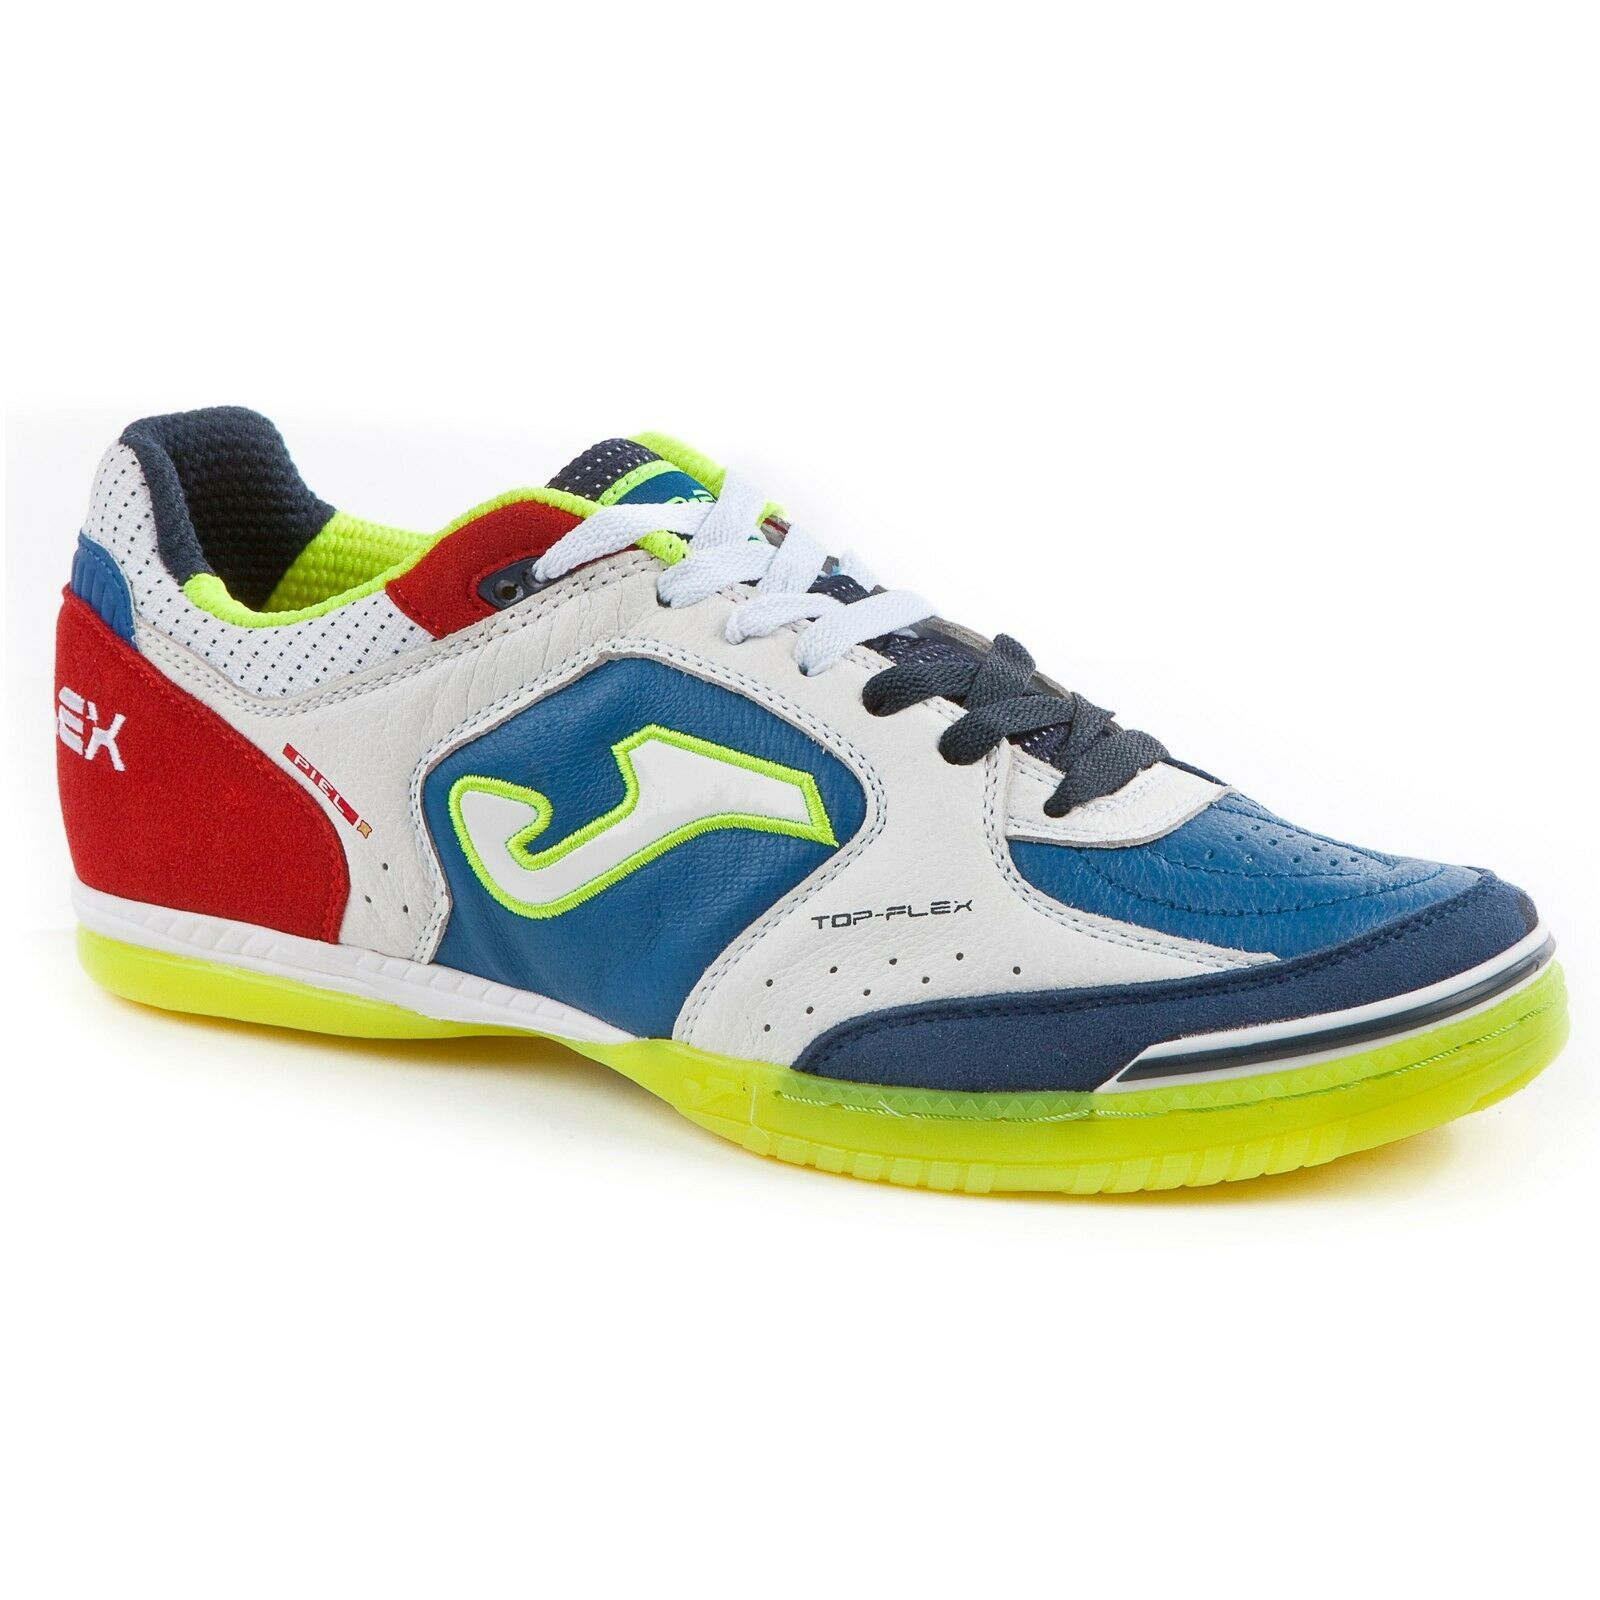 Scarpe calcio a 5 JOMA Top Flex Flex Flex indoor 716 n. 44 5c9a00